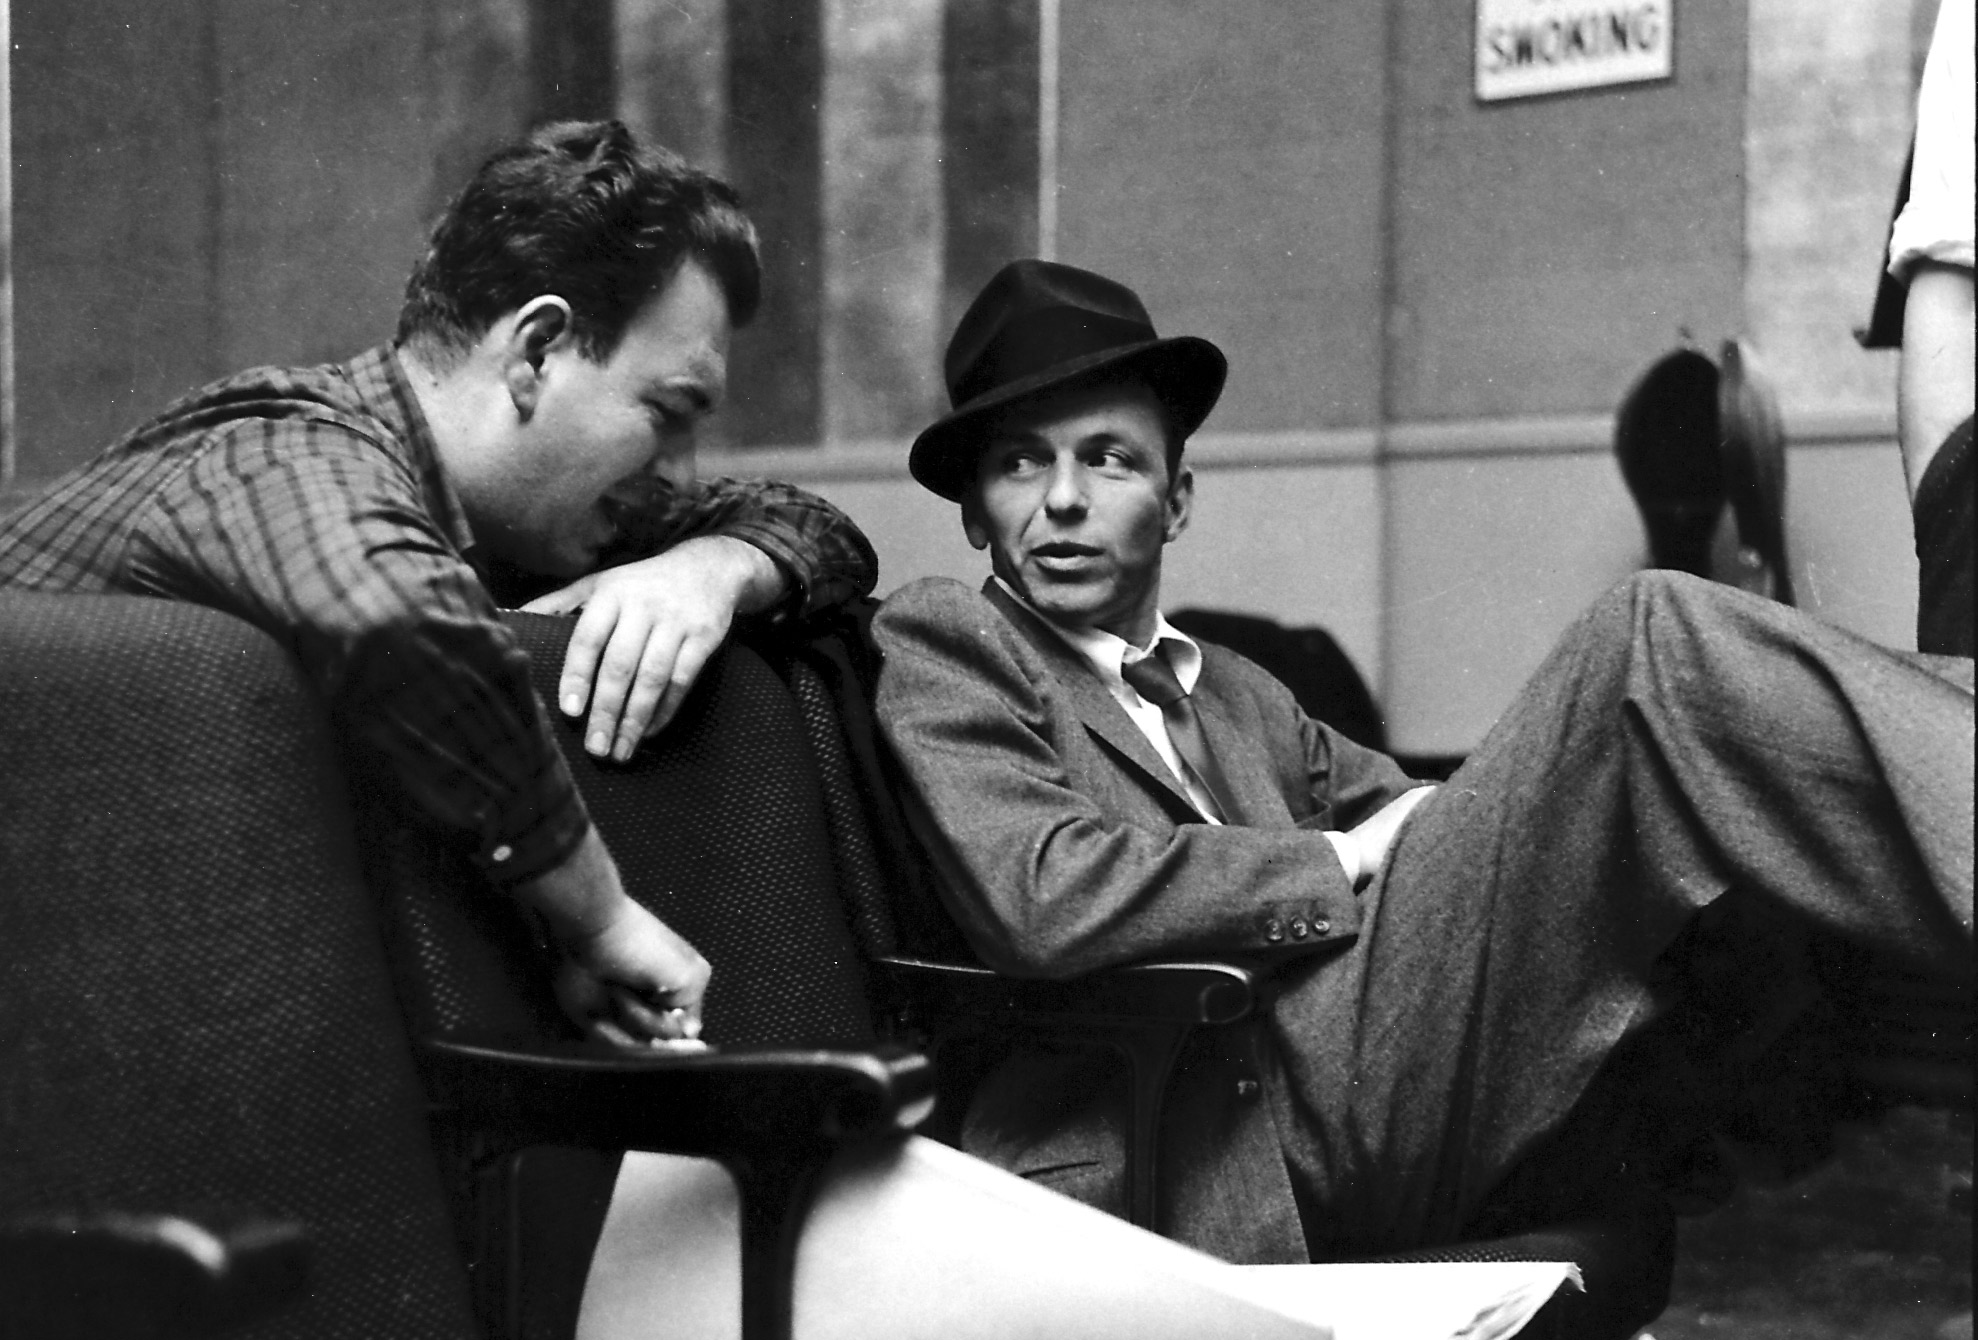 an introduction to the life and music by frank sinatra Frank sinatra is one of the most popular singers in american history as an actor, he appeared in fifty-eight films and won an academy award for his role in from here to eternity his career started in the 1930s and continued into the 1990s.